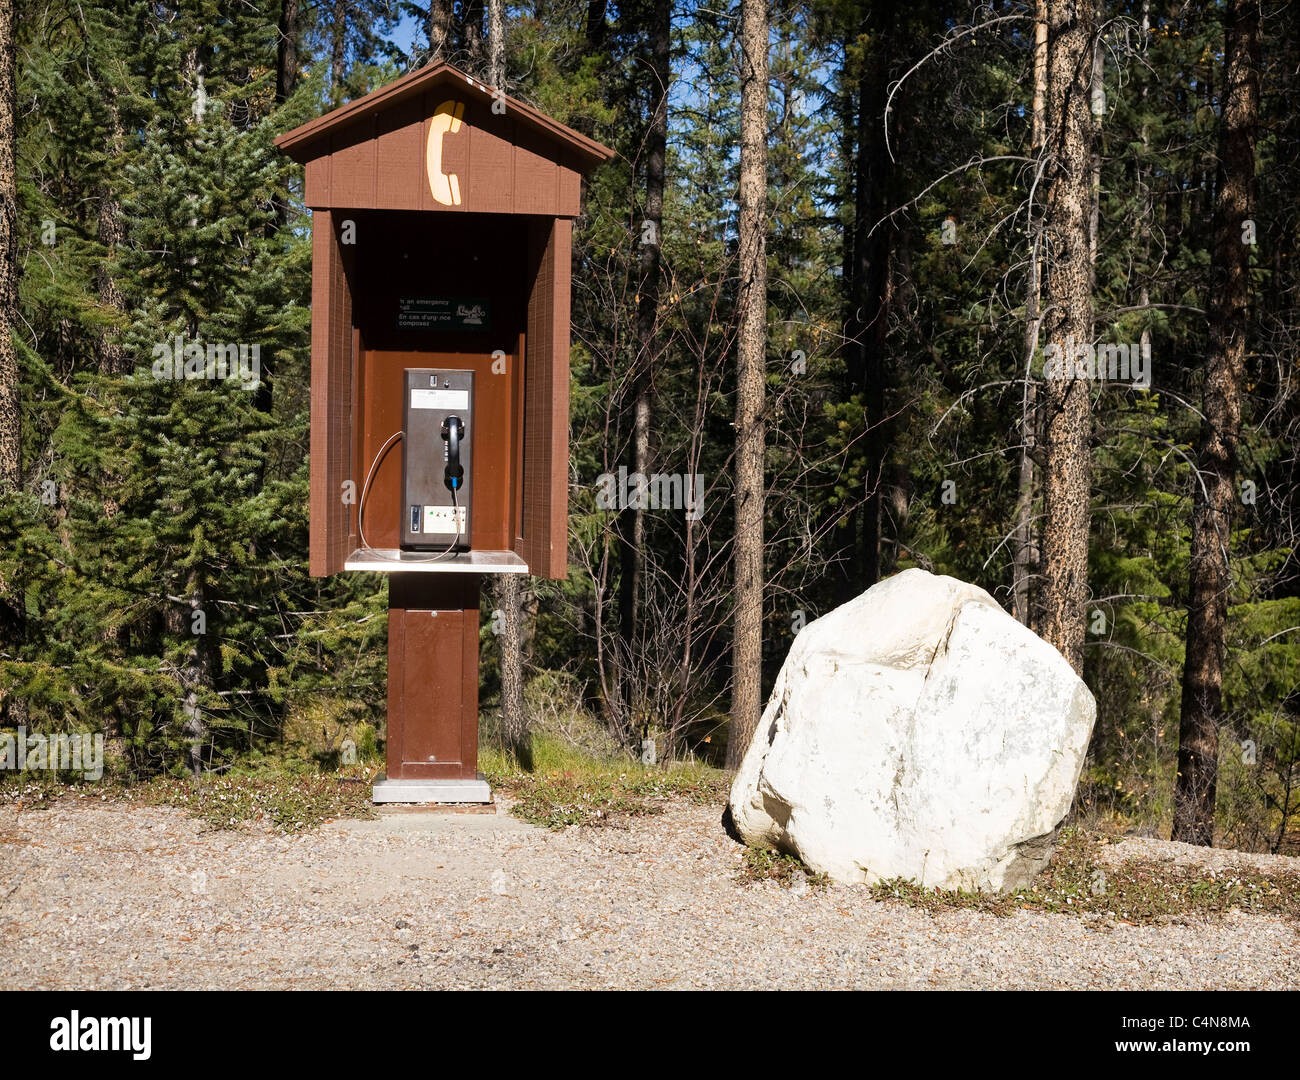 Outdoor pay phone near hiking trail, Jasper National Park, Alberta, Canada. - Stock Image